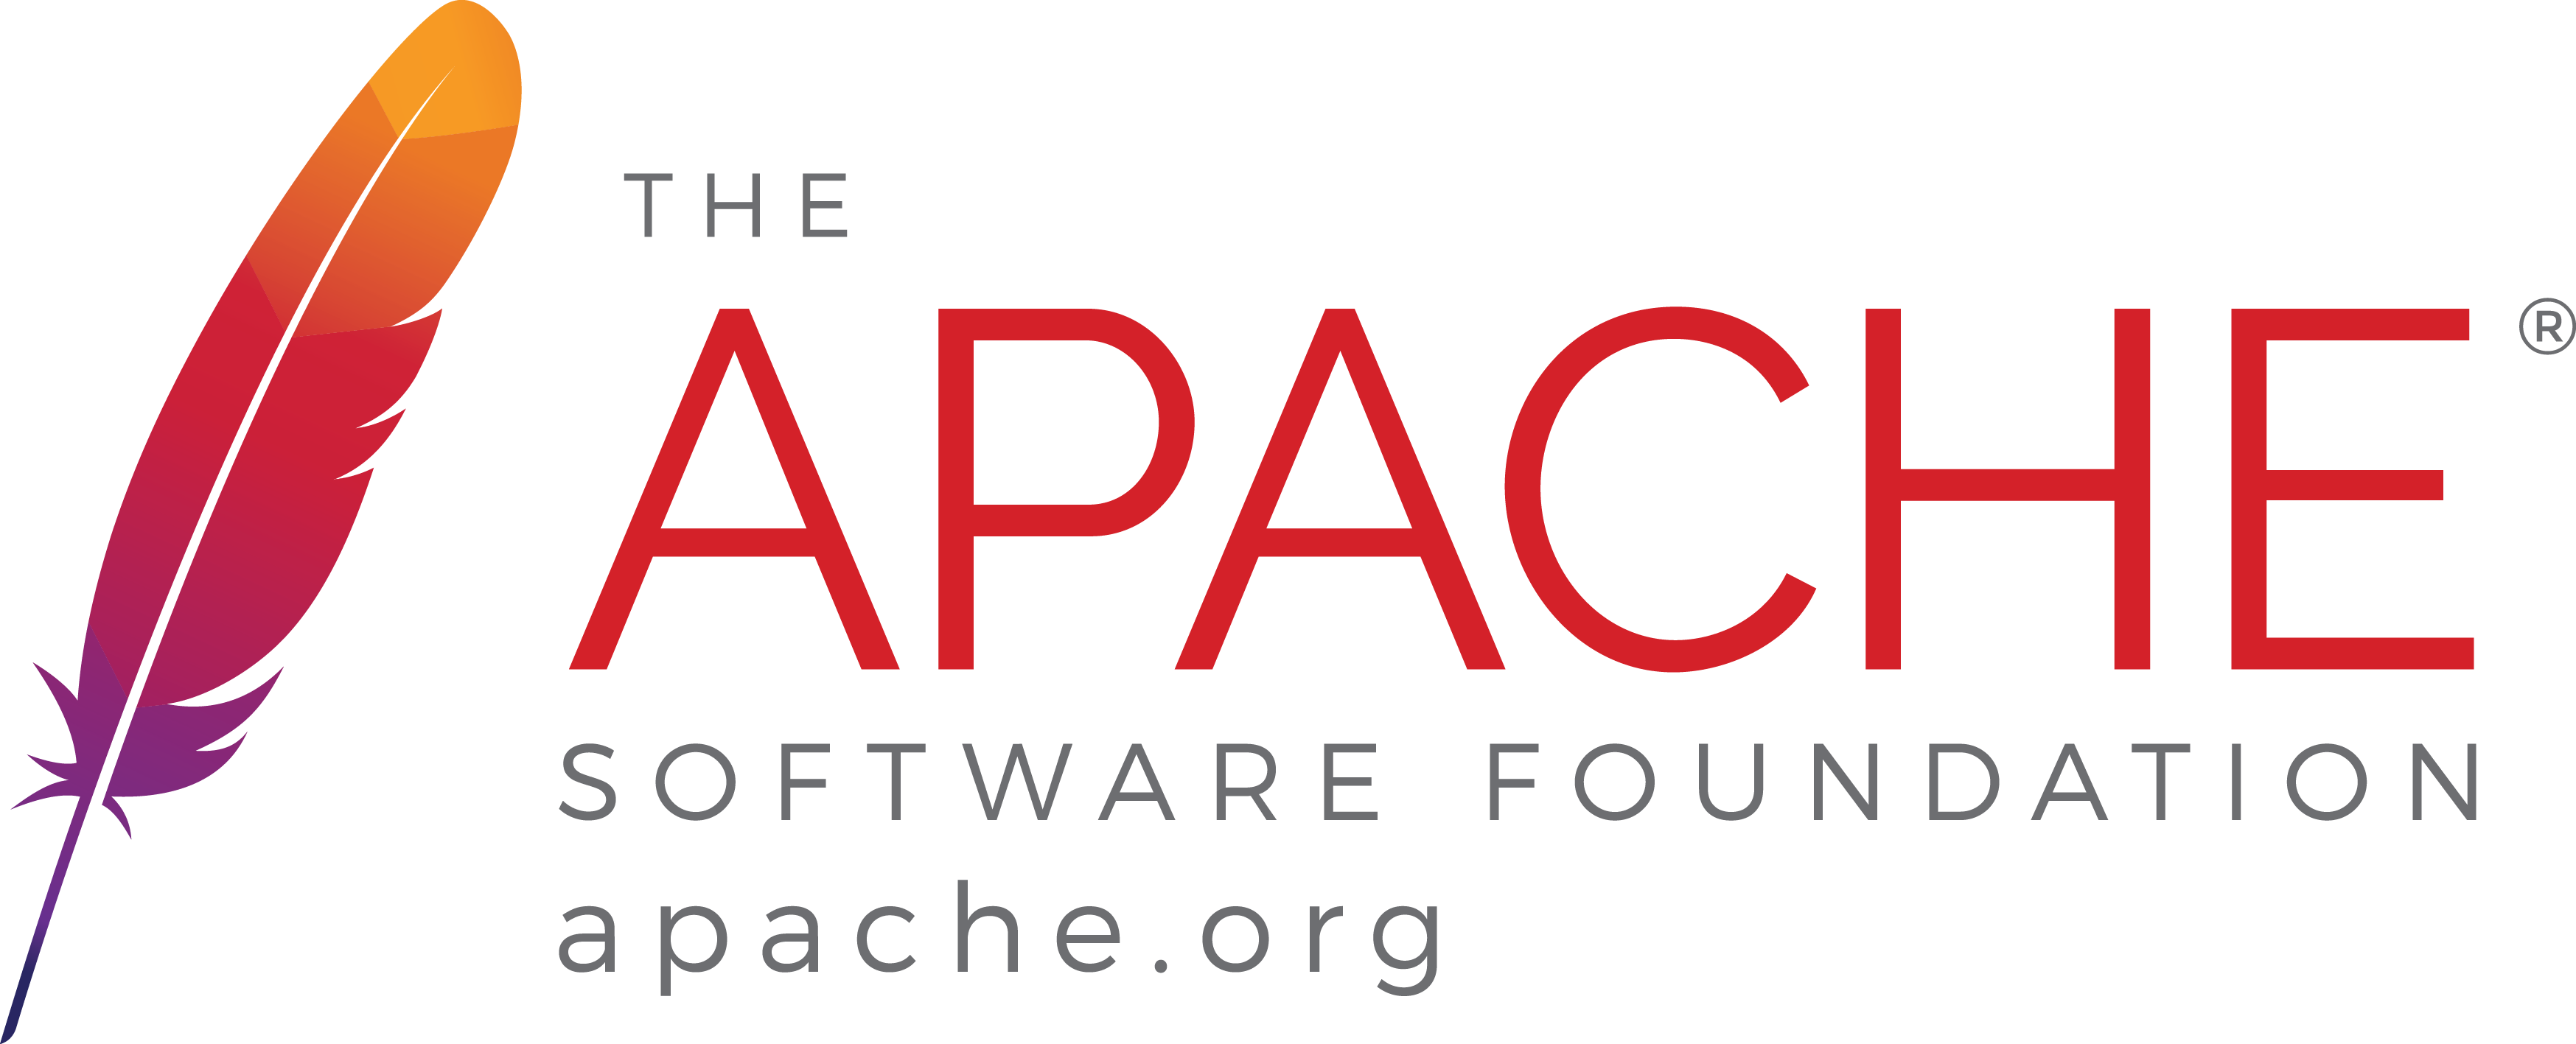 Text png logo. Apache software foundation graphics